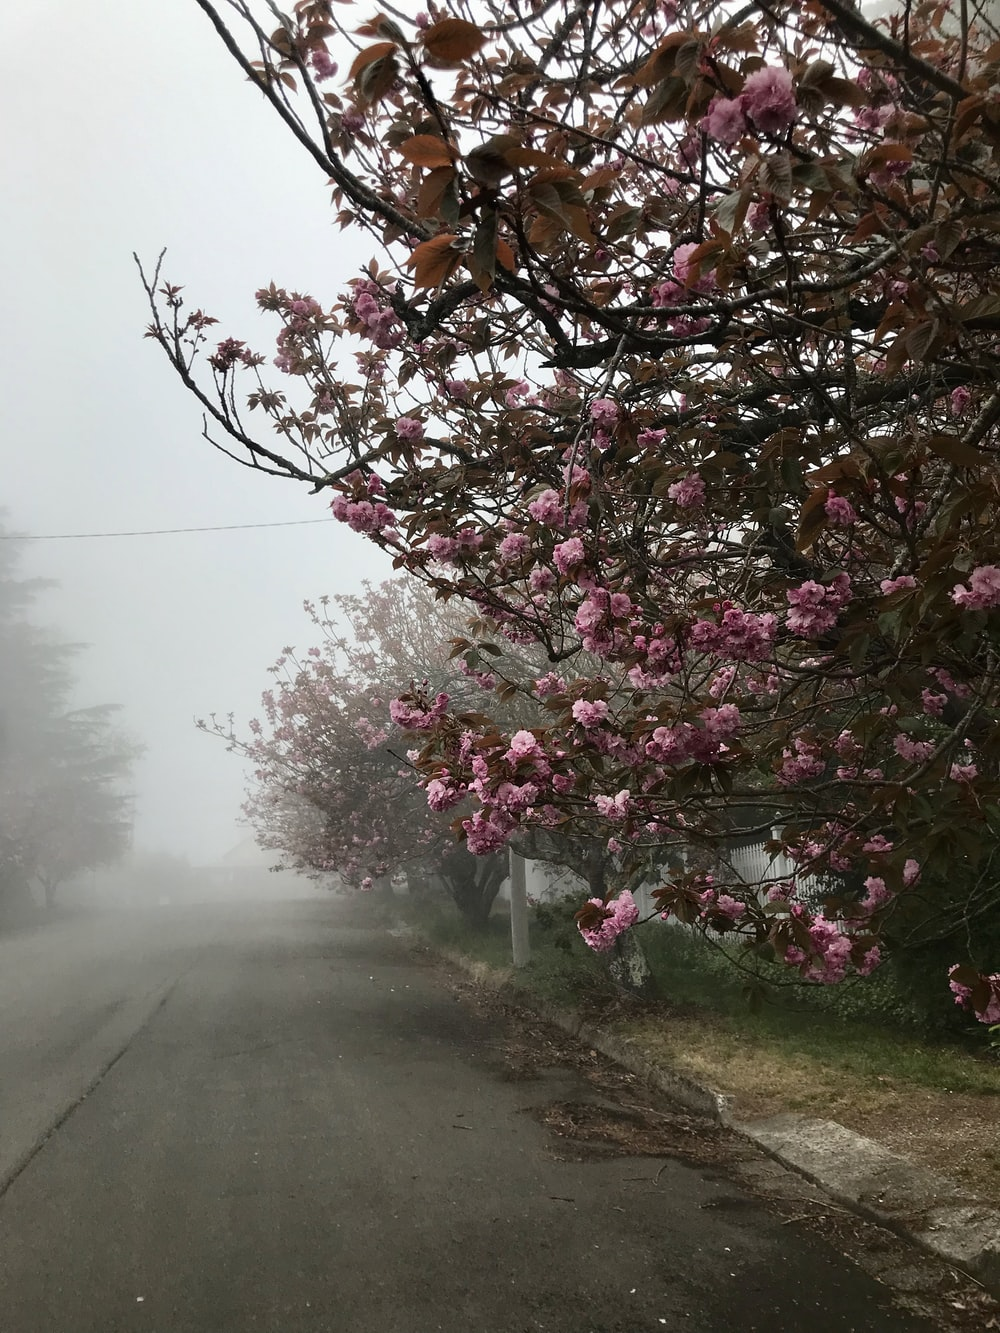 pink cherry blossom tree beside road